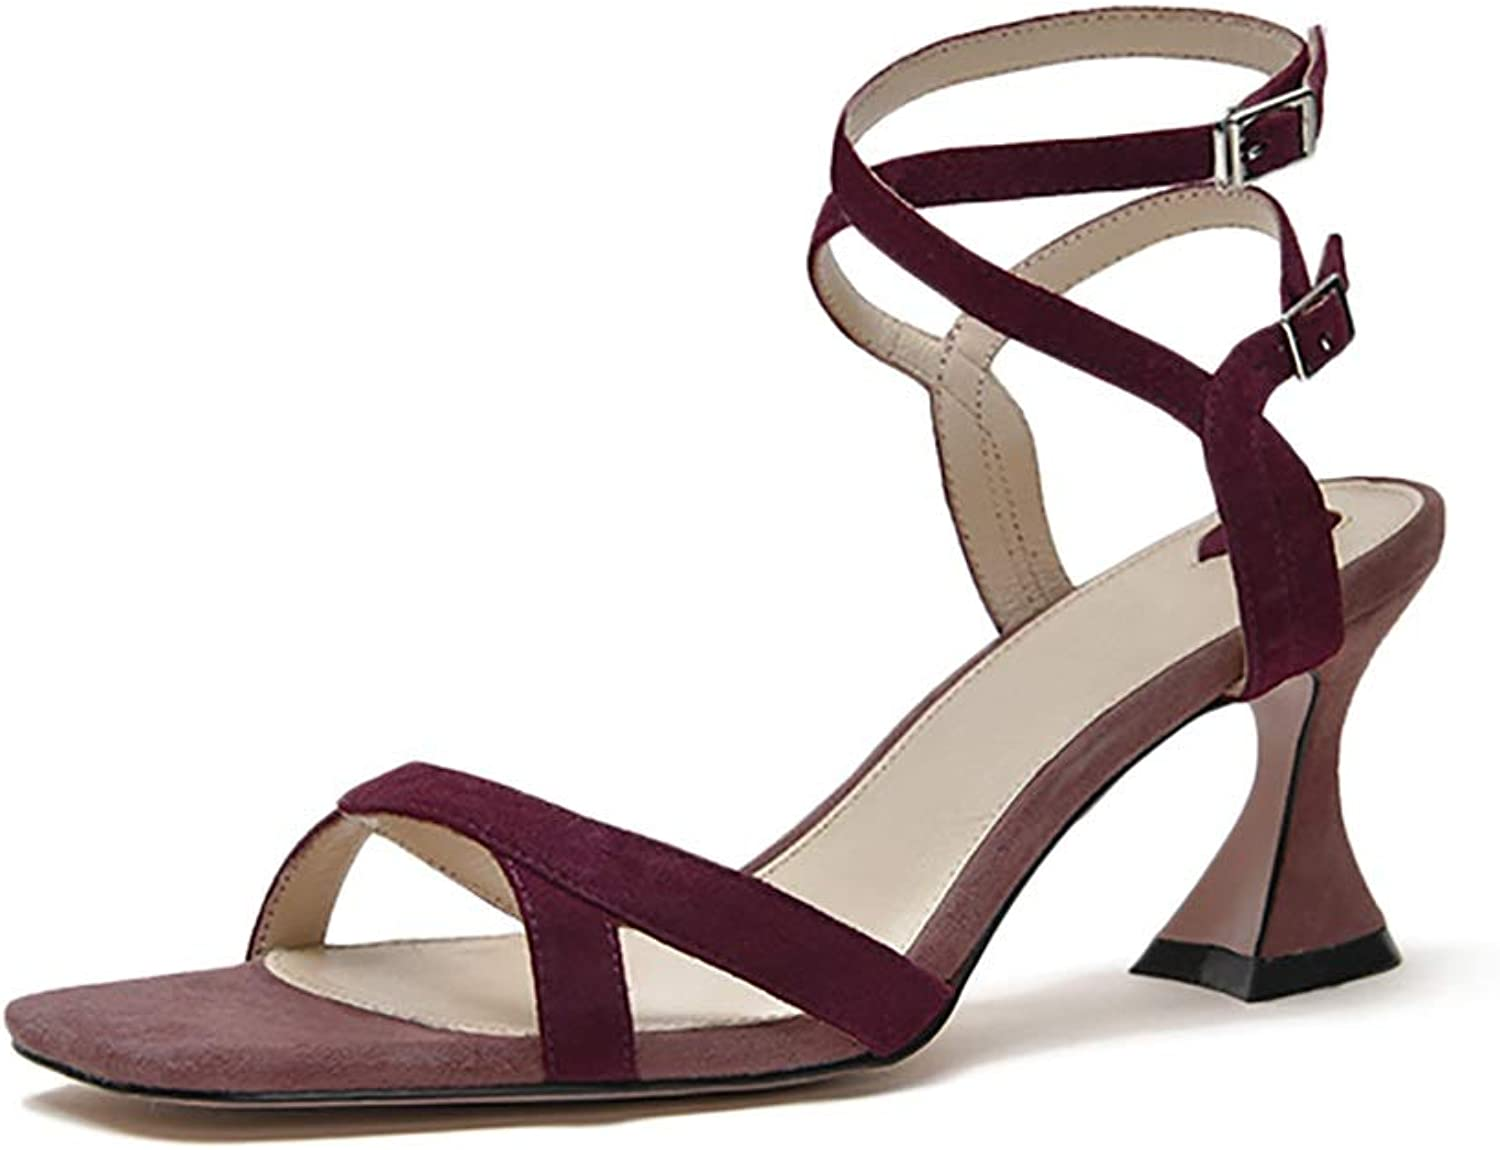 Women's Lace-up Sandals, Vintage Chunky Heels, Wine Red 7cm (color   Wine red, Size   34)